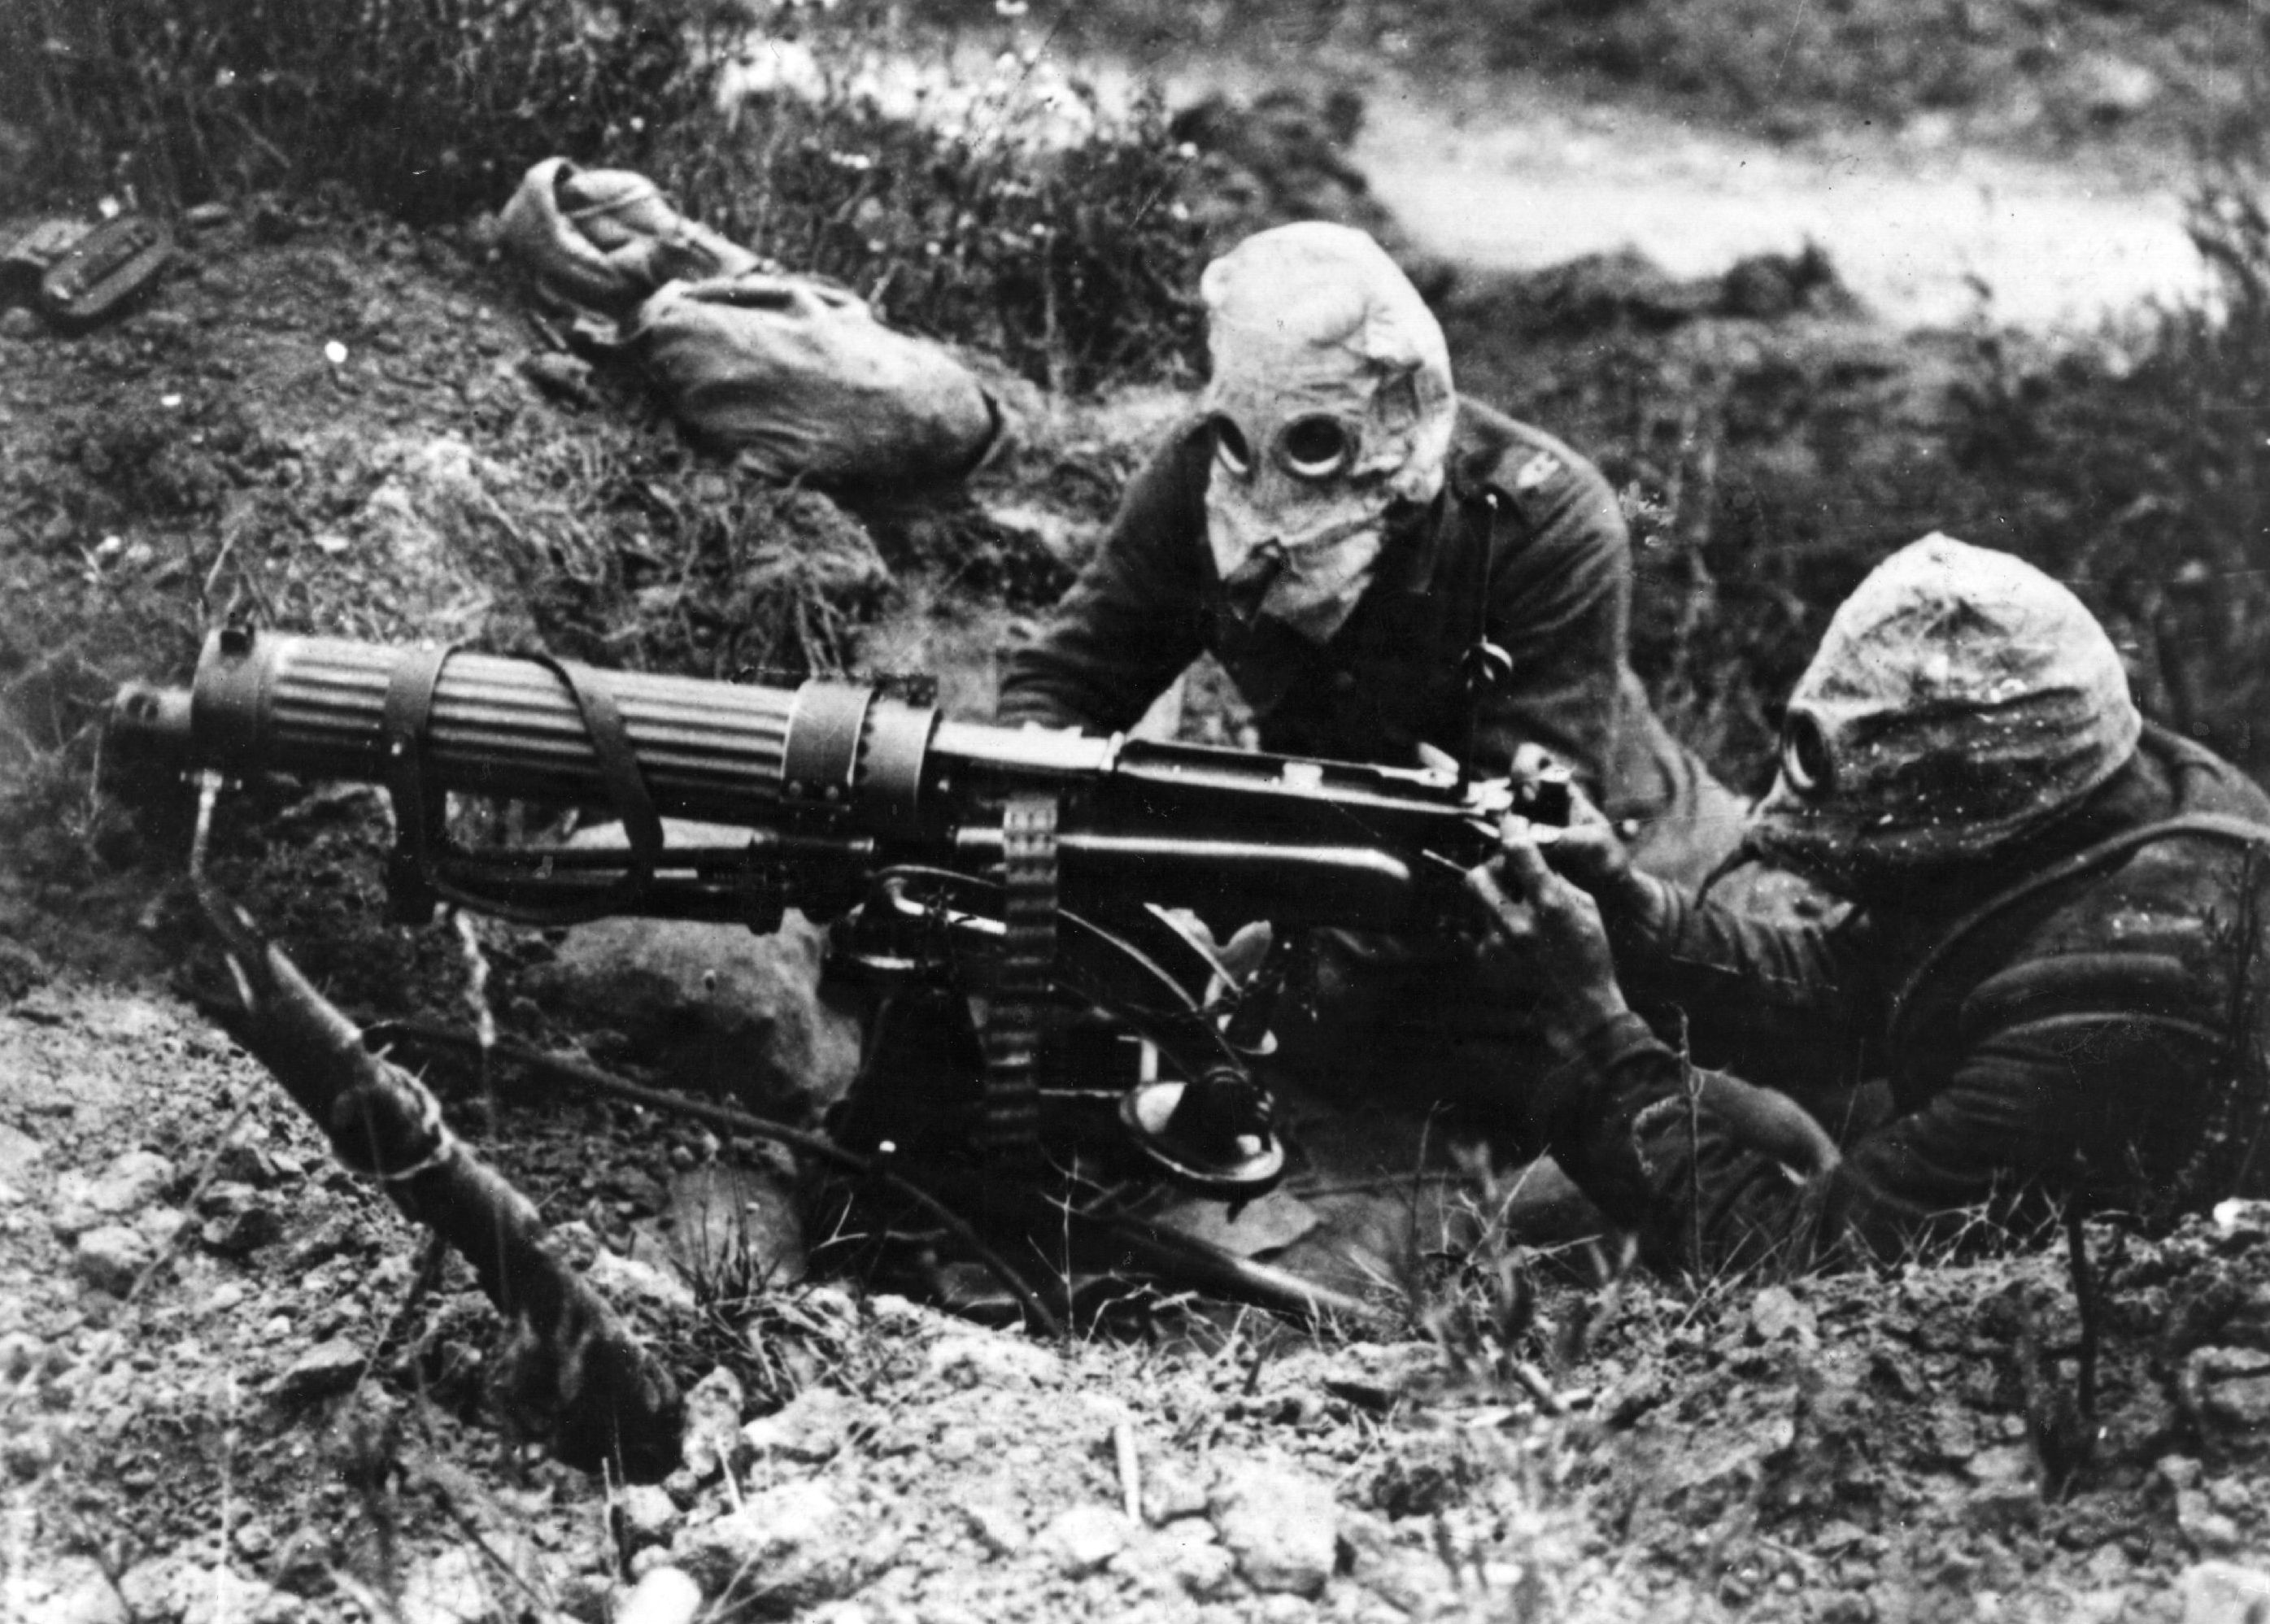 world war 1 2 World war ii changed the economic, political, and global landscape forever explore its fascinating history with these interesting world war ii facts.